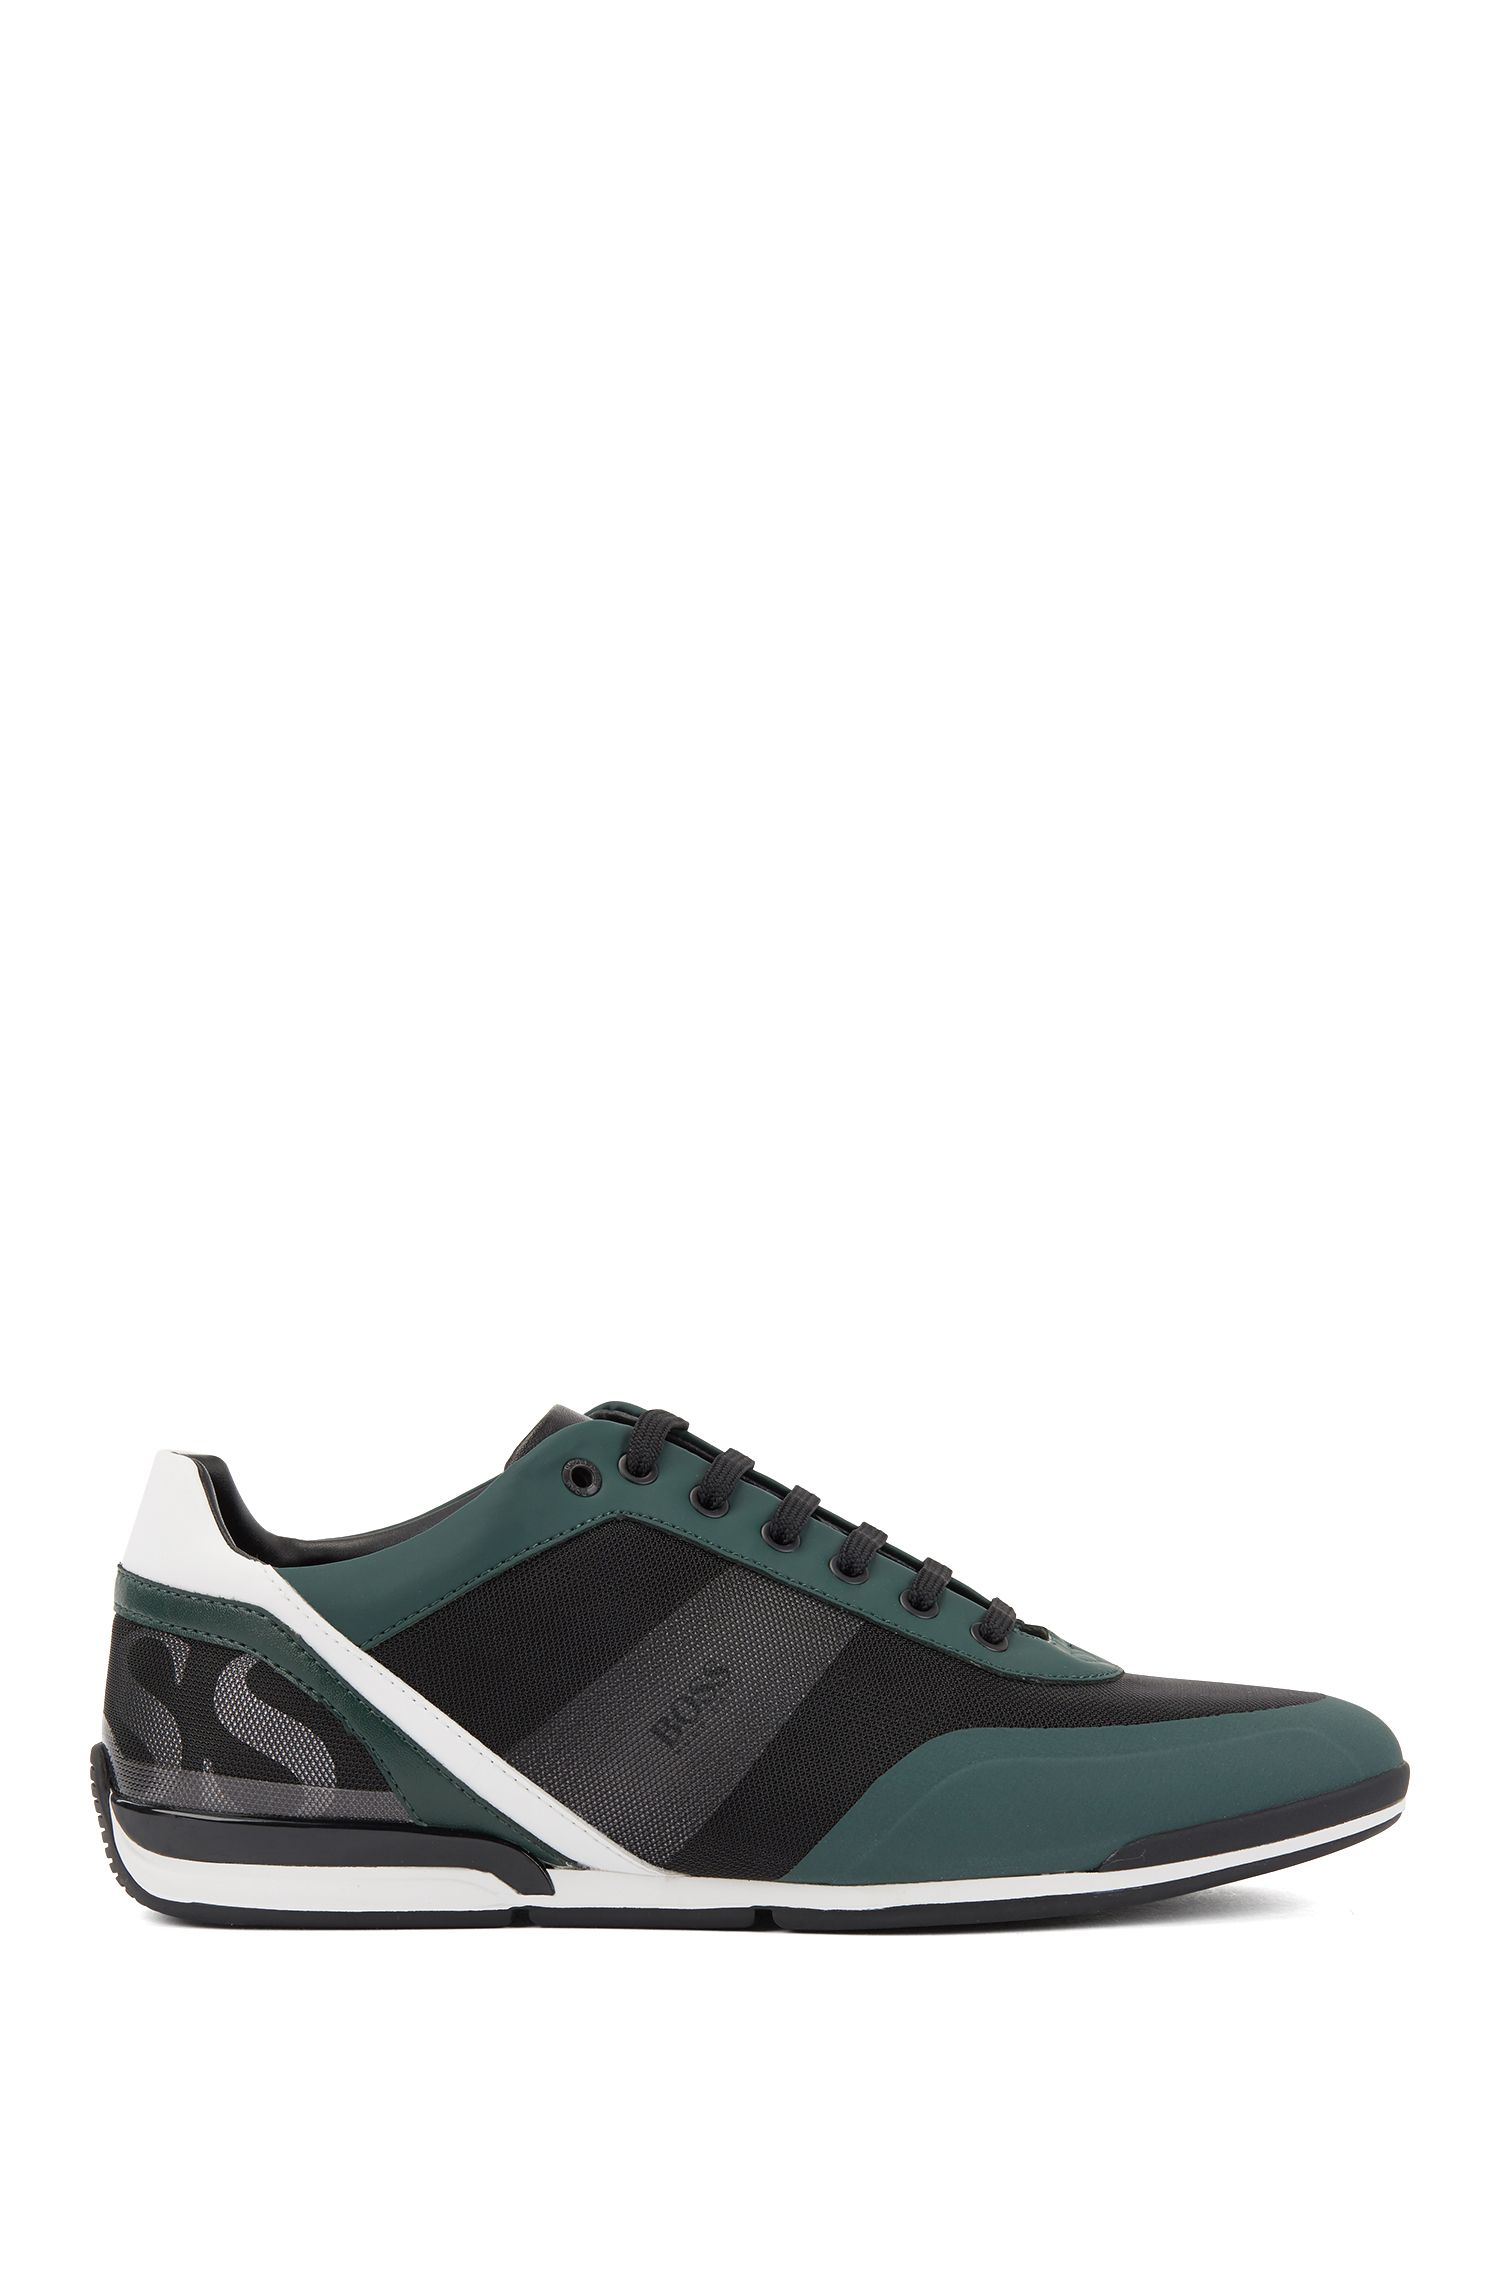 Low-top sneakers in printed technical fabric with mesh, Green